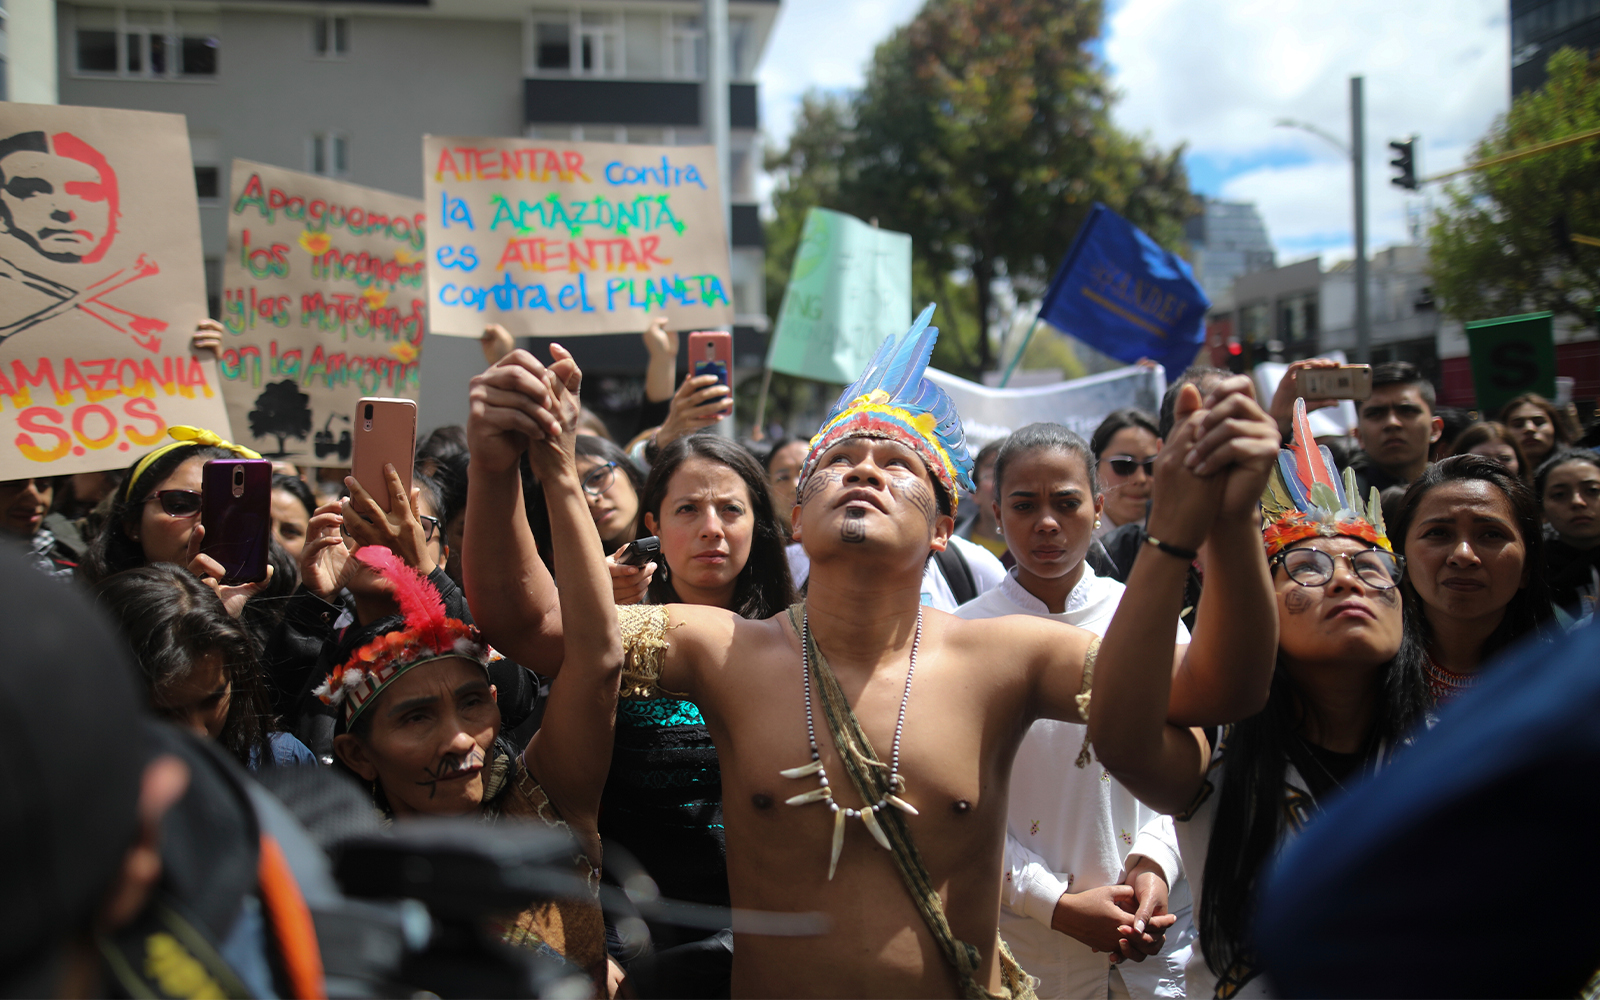 Indigenous demonstrators join a protest outside Brazil's embassy to call on Brazil's President Jair Bolsonaro to act to protect the Amazon rainforest, in Bogota, Colombia, Aug. 23, 2019. (AP Photo/Ivan Valencia)